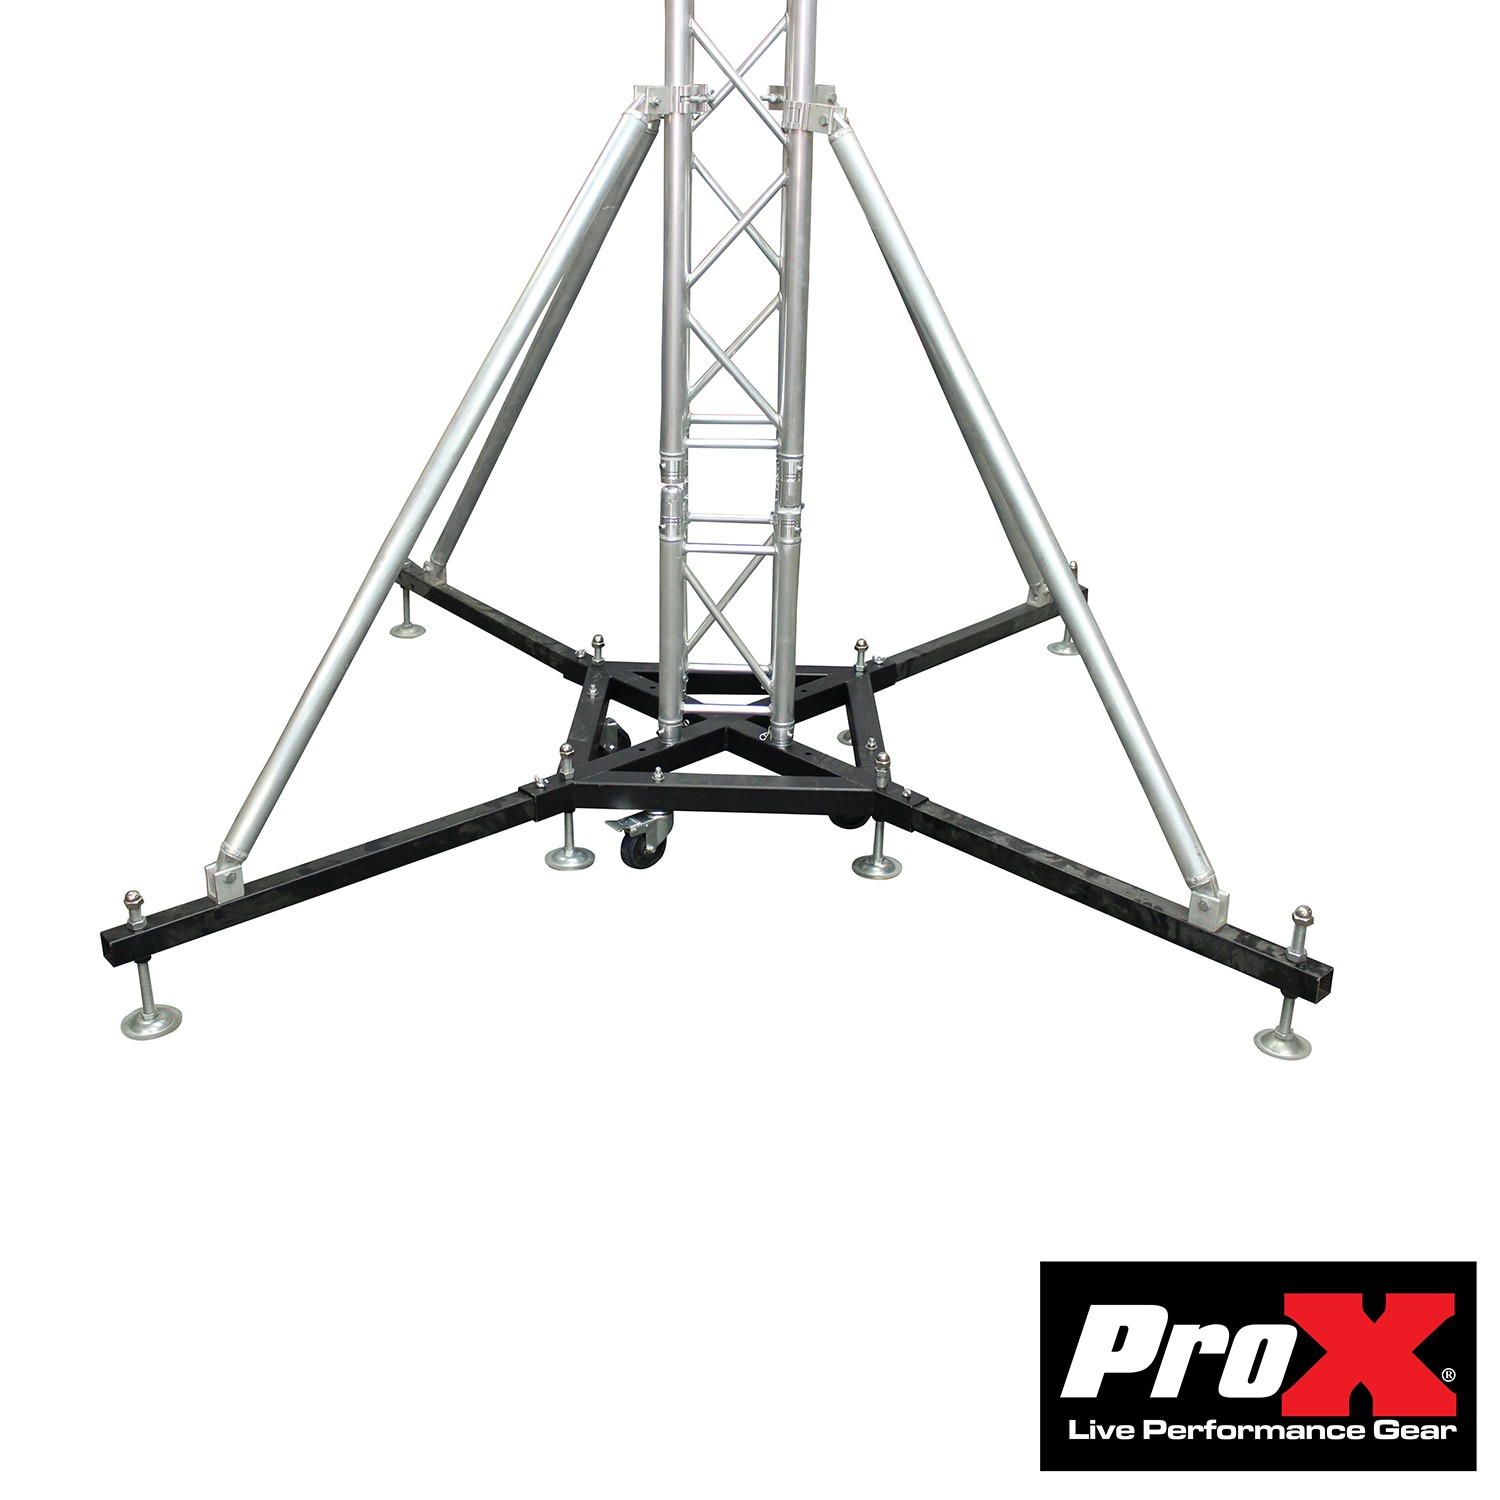 Prox Xtp Gsbpack3 Truss Tower Stage Roofing System